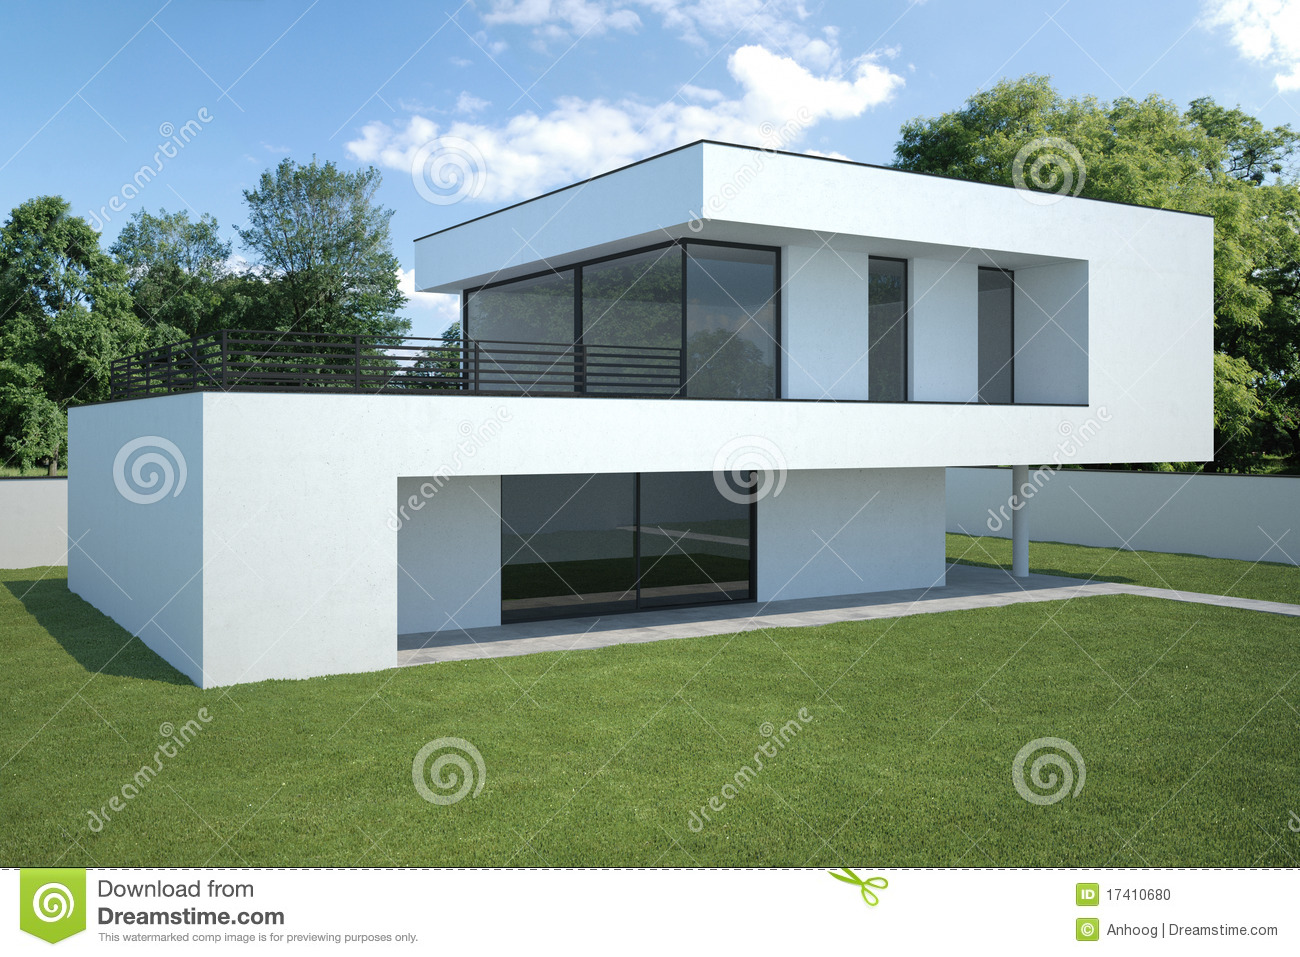 Maison moderne ext rieur avec la pelouse photo stock for Maison moderne feber